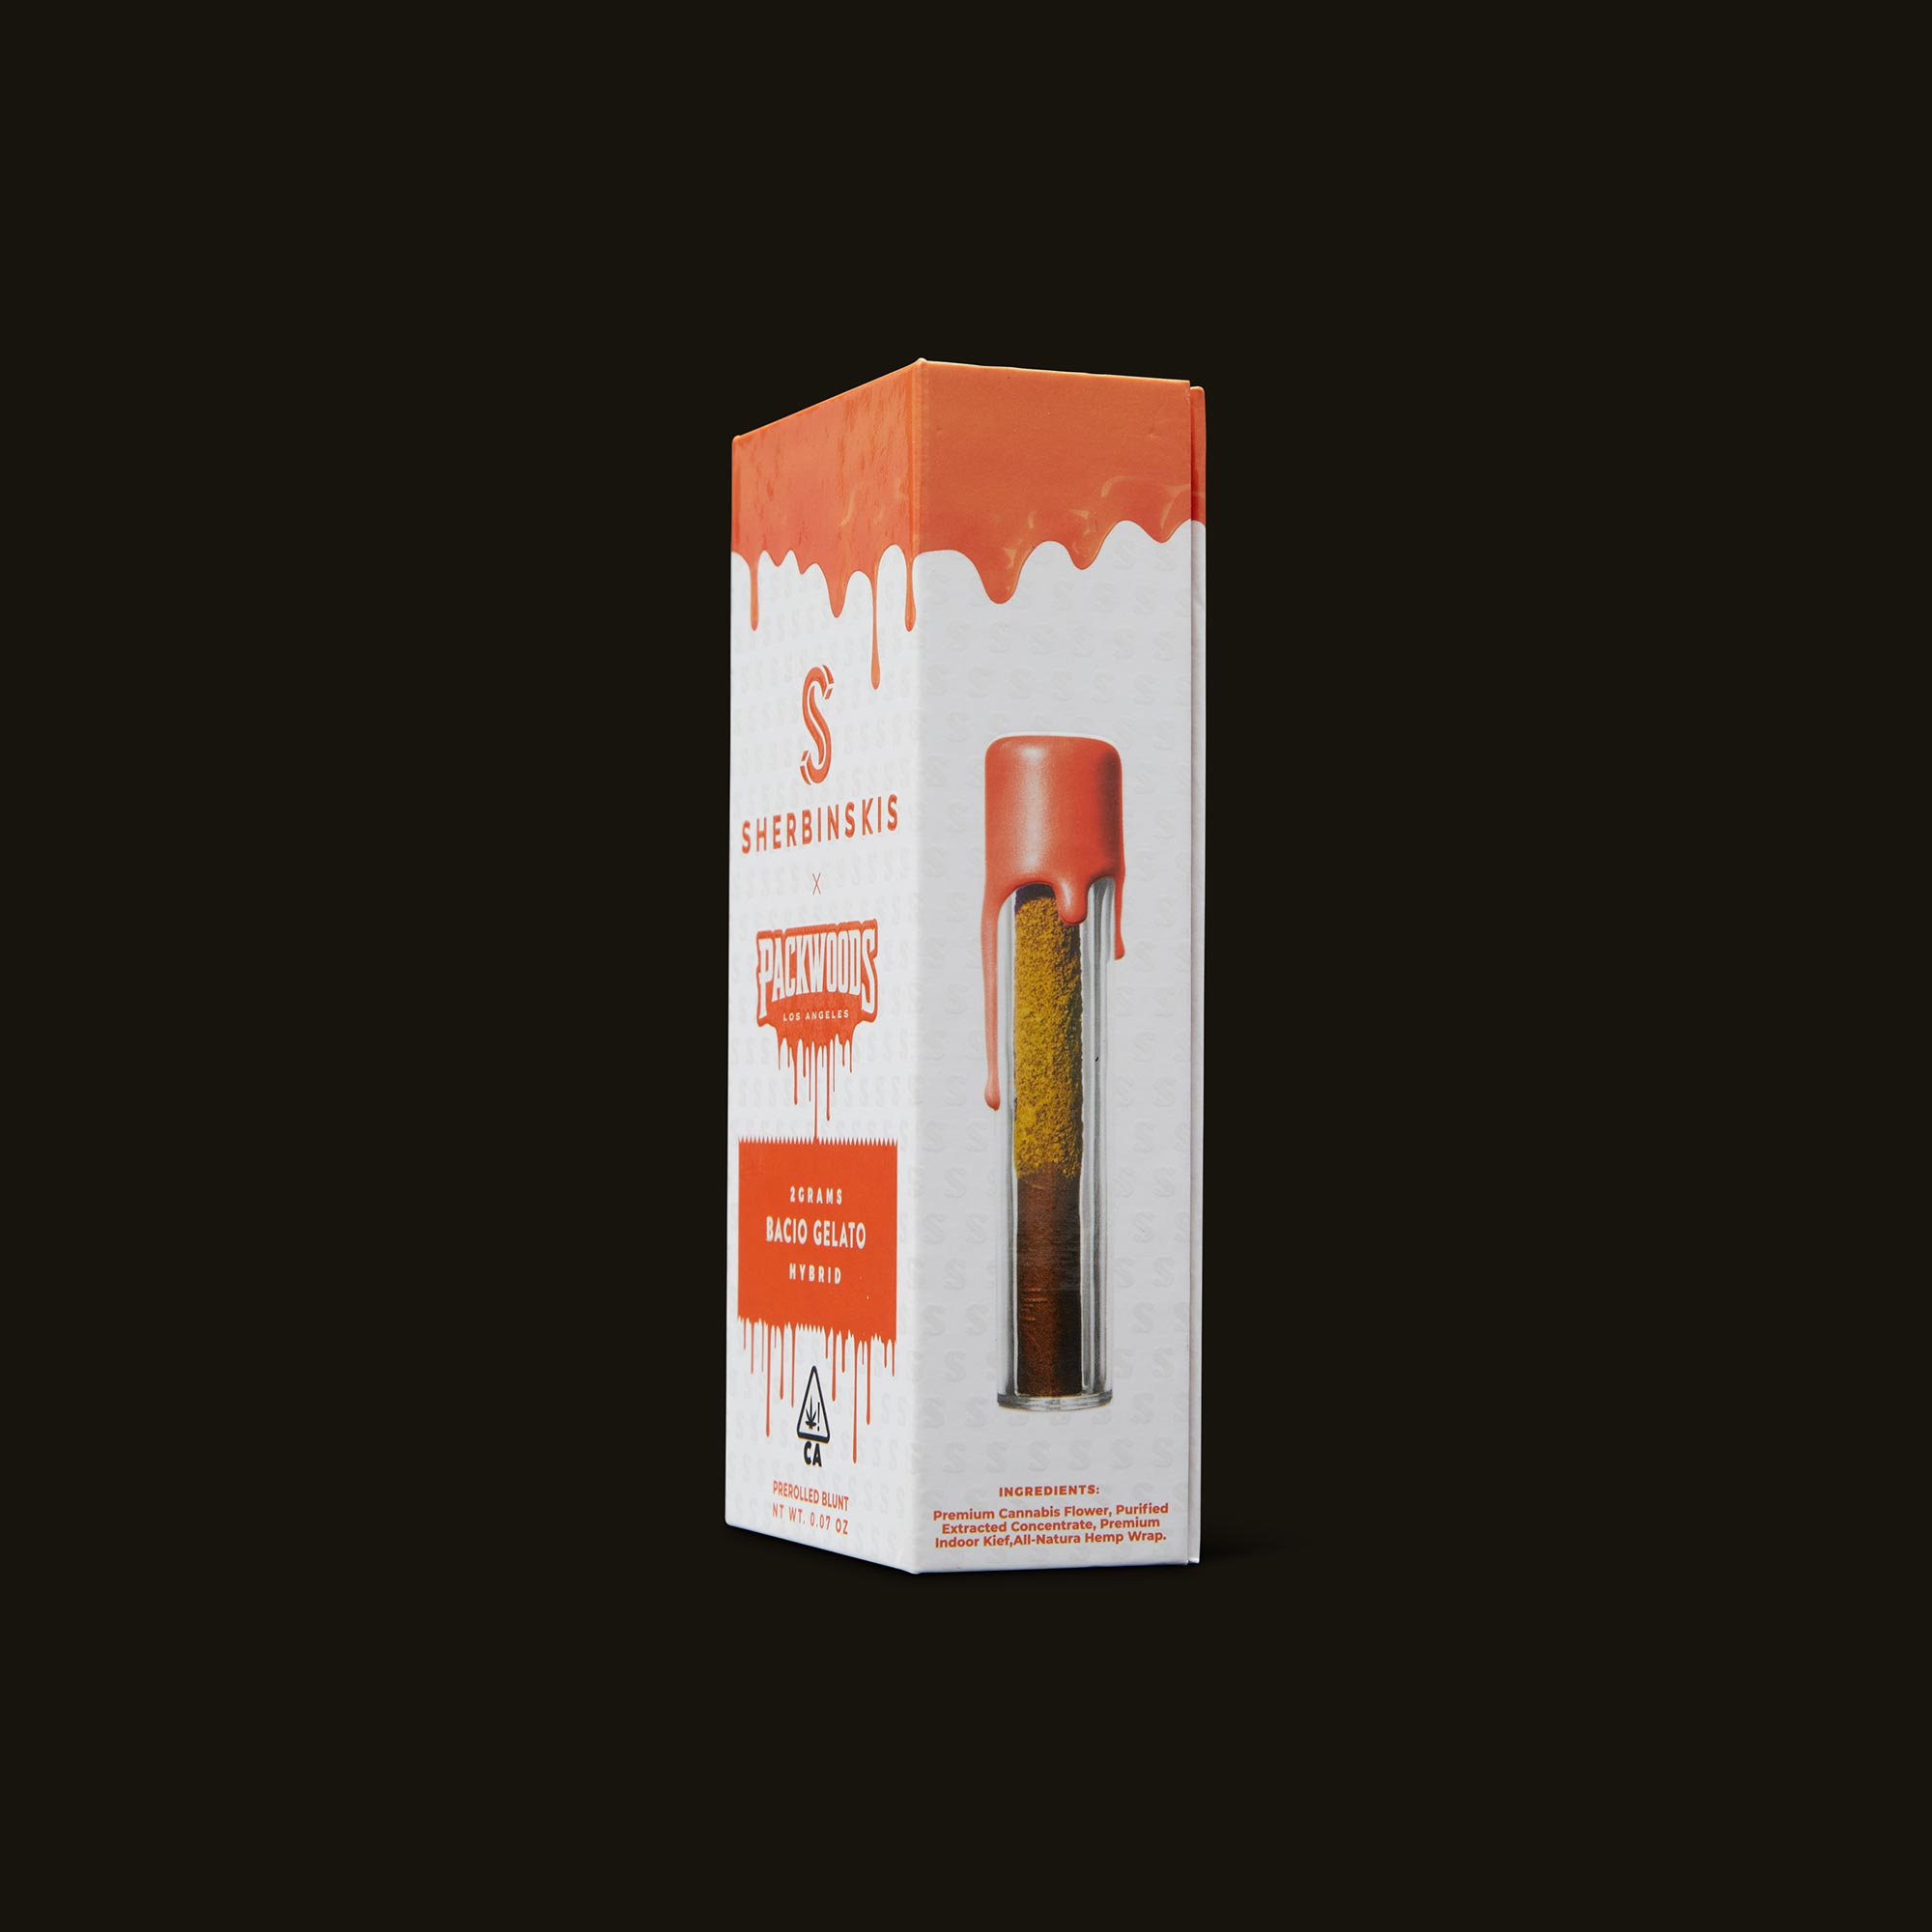 Packwoods Sherbinskis x Packwoods Bacio Gelato Blunt Side Packaging